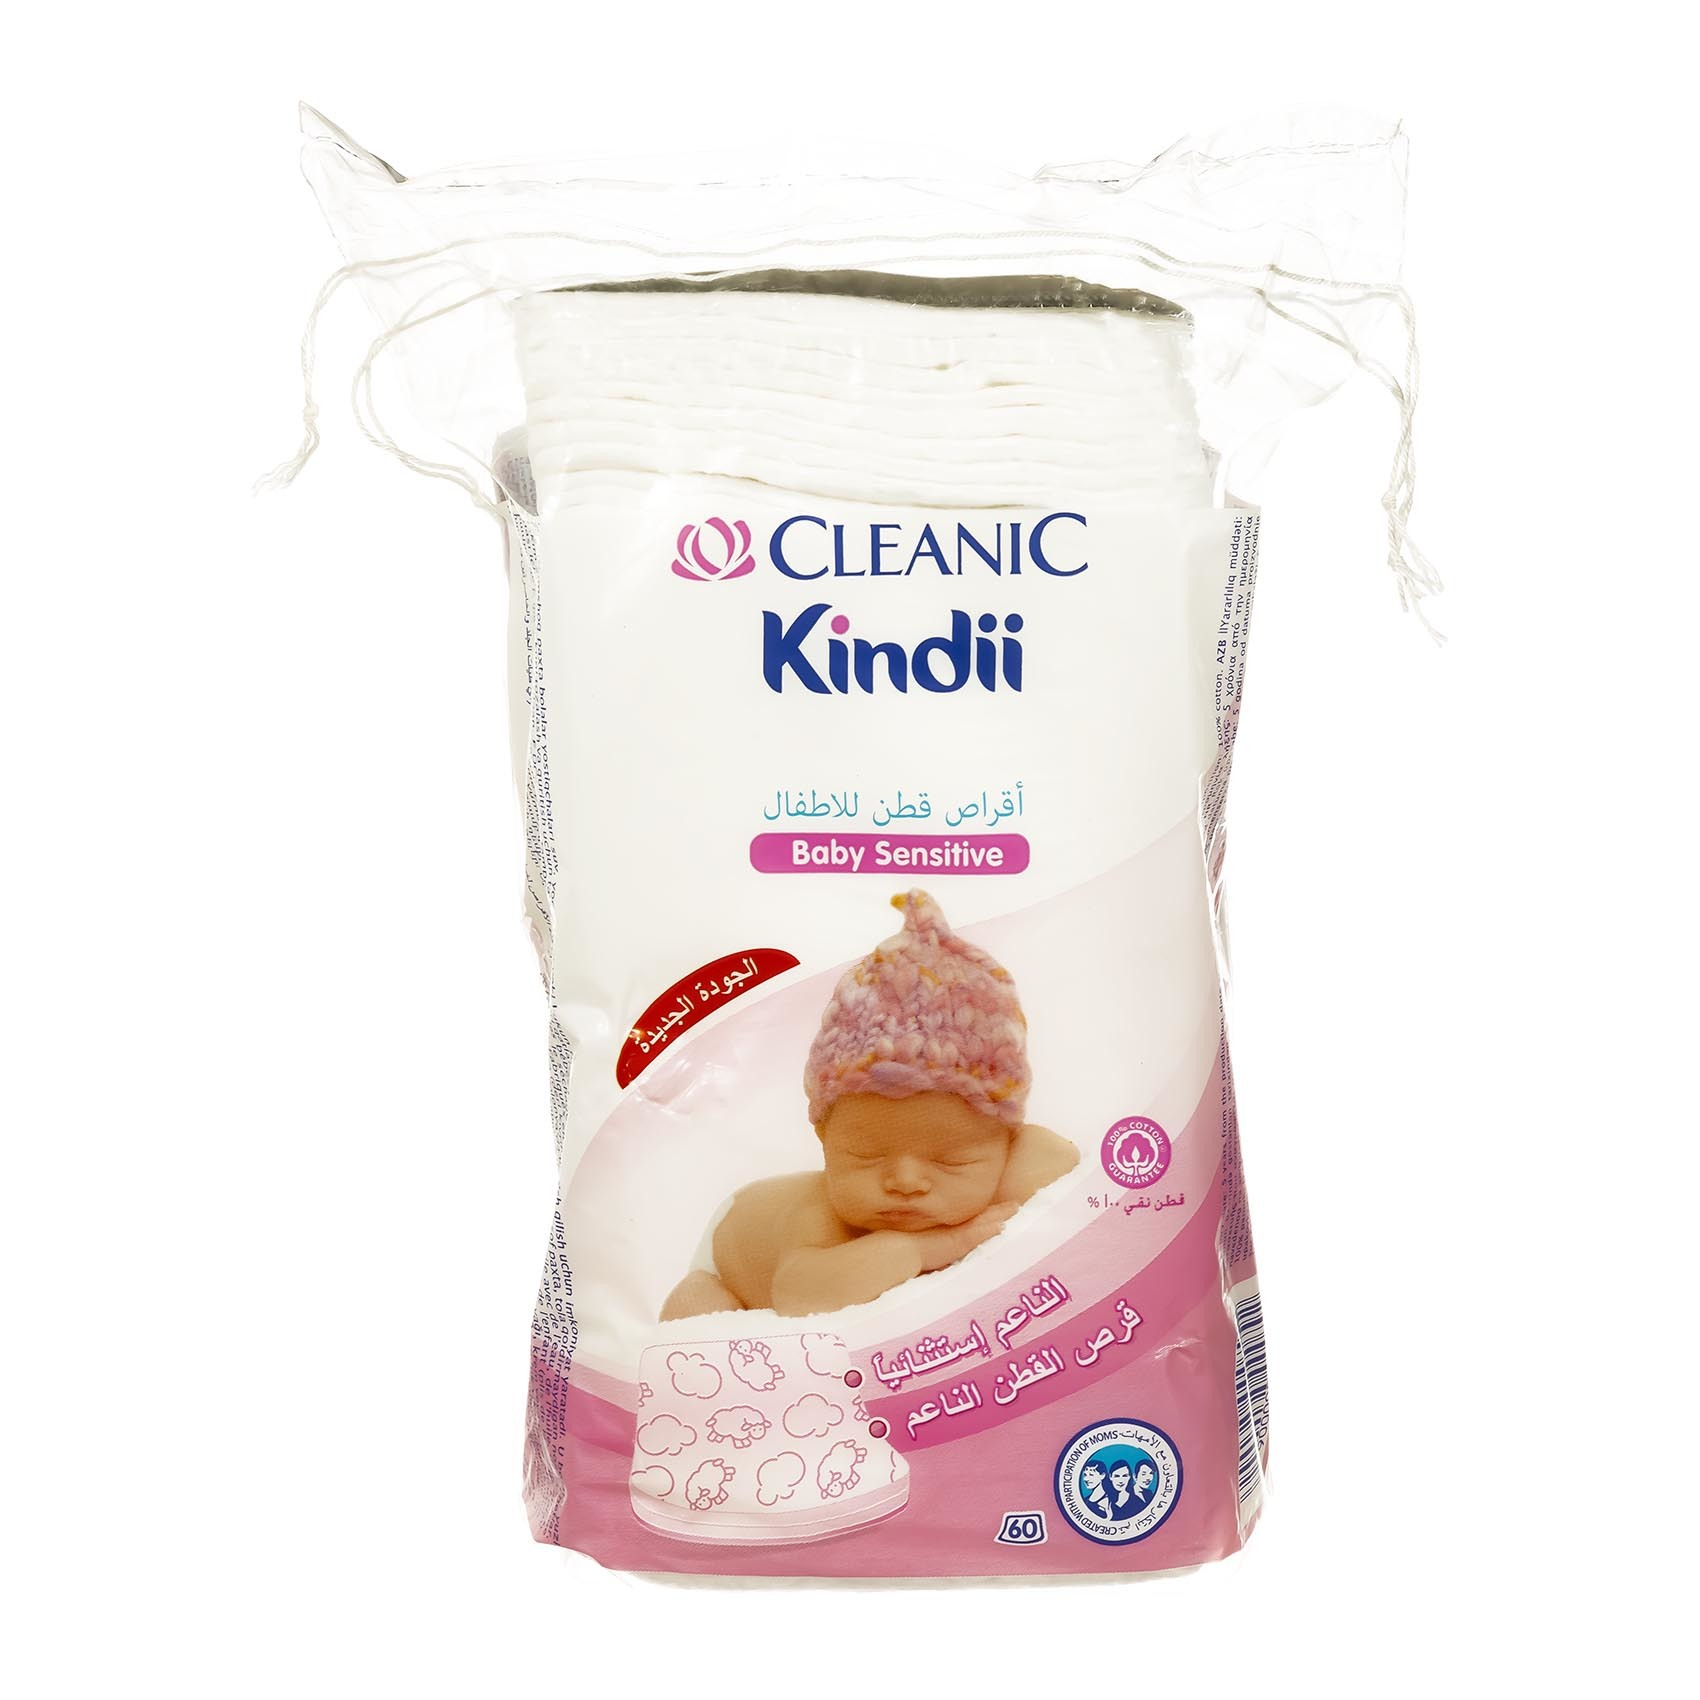 Buy Cleanic Kindii Baby Cotton Pads Rectangular 60 Pieces Online Shop Baby Products On Carrefour Egypt